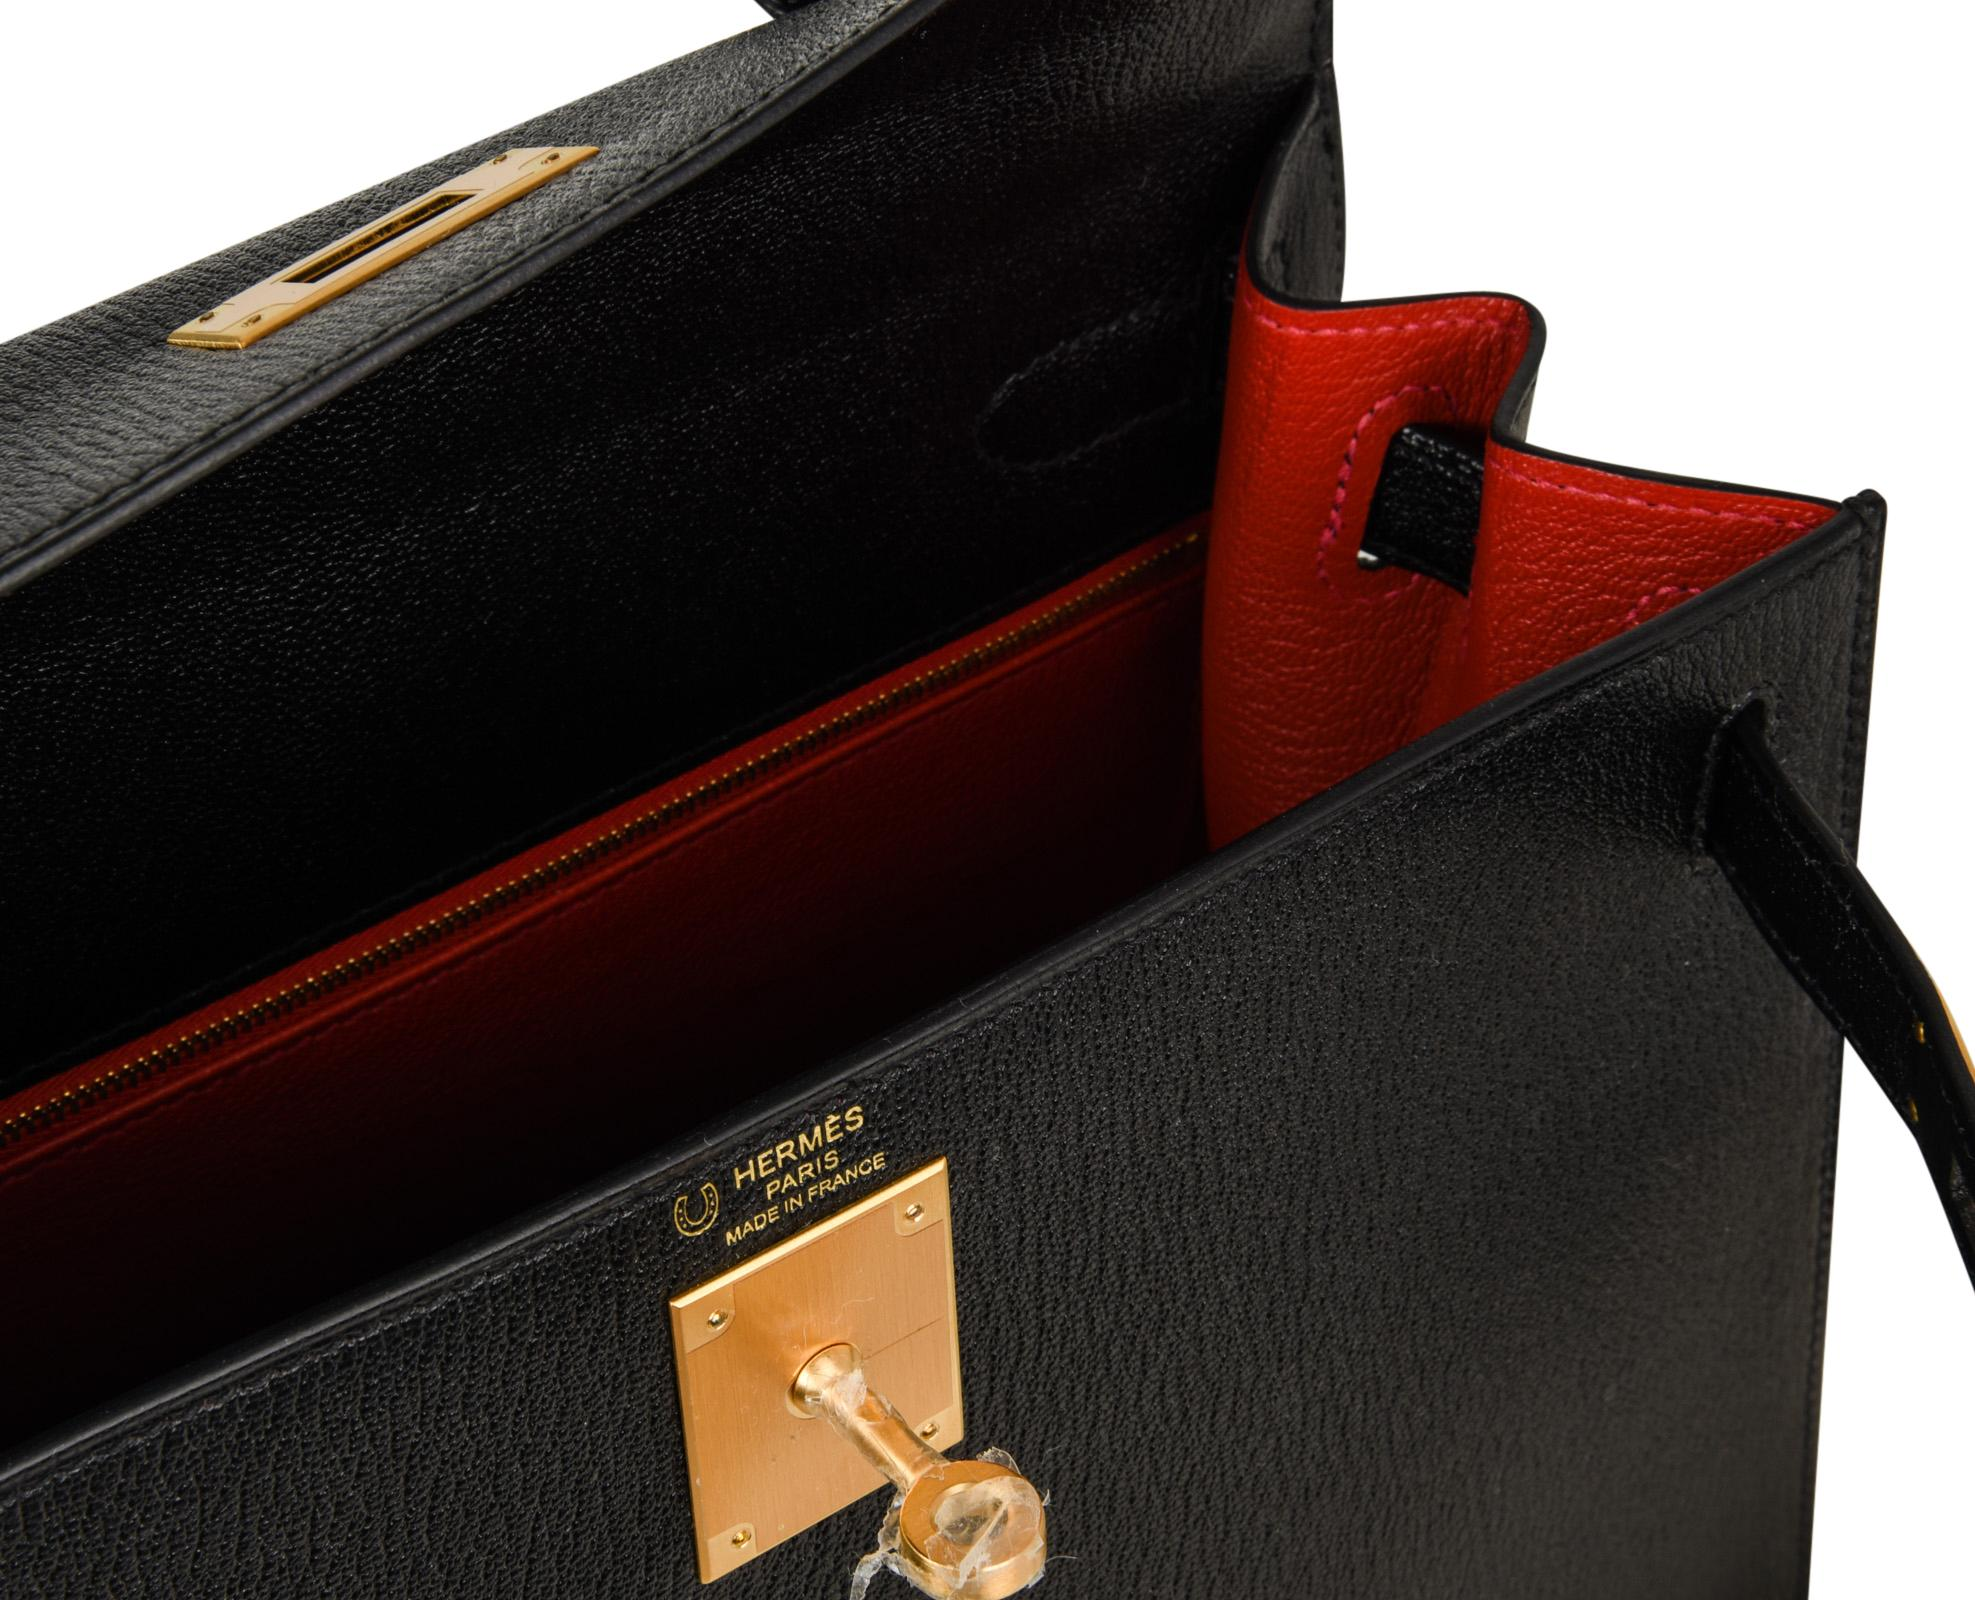 aa85ff0a87a8 ... usa guaranteed authentic rare chevre leather hss hermes kelly 28 sellier  bag with brushed gold hardware